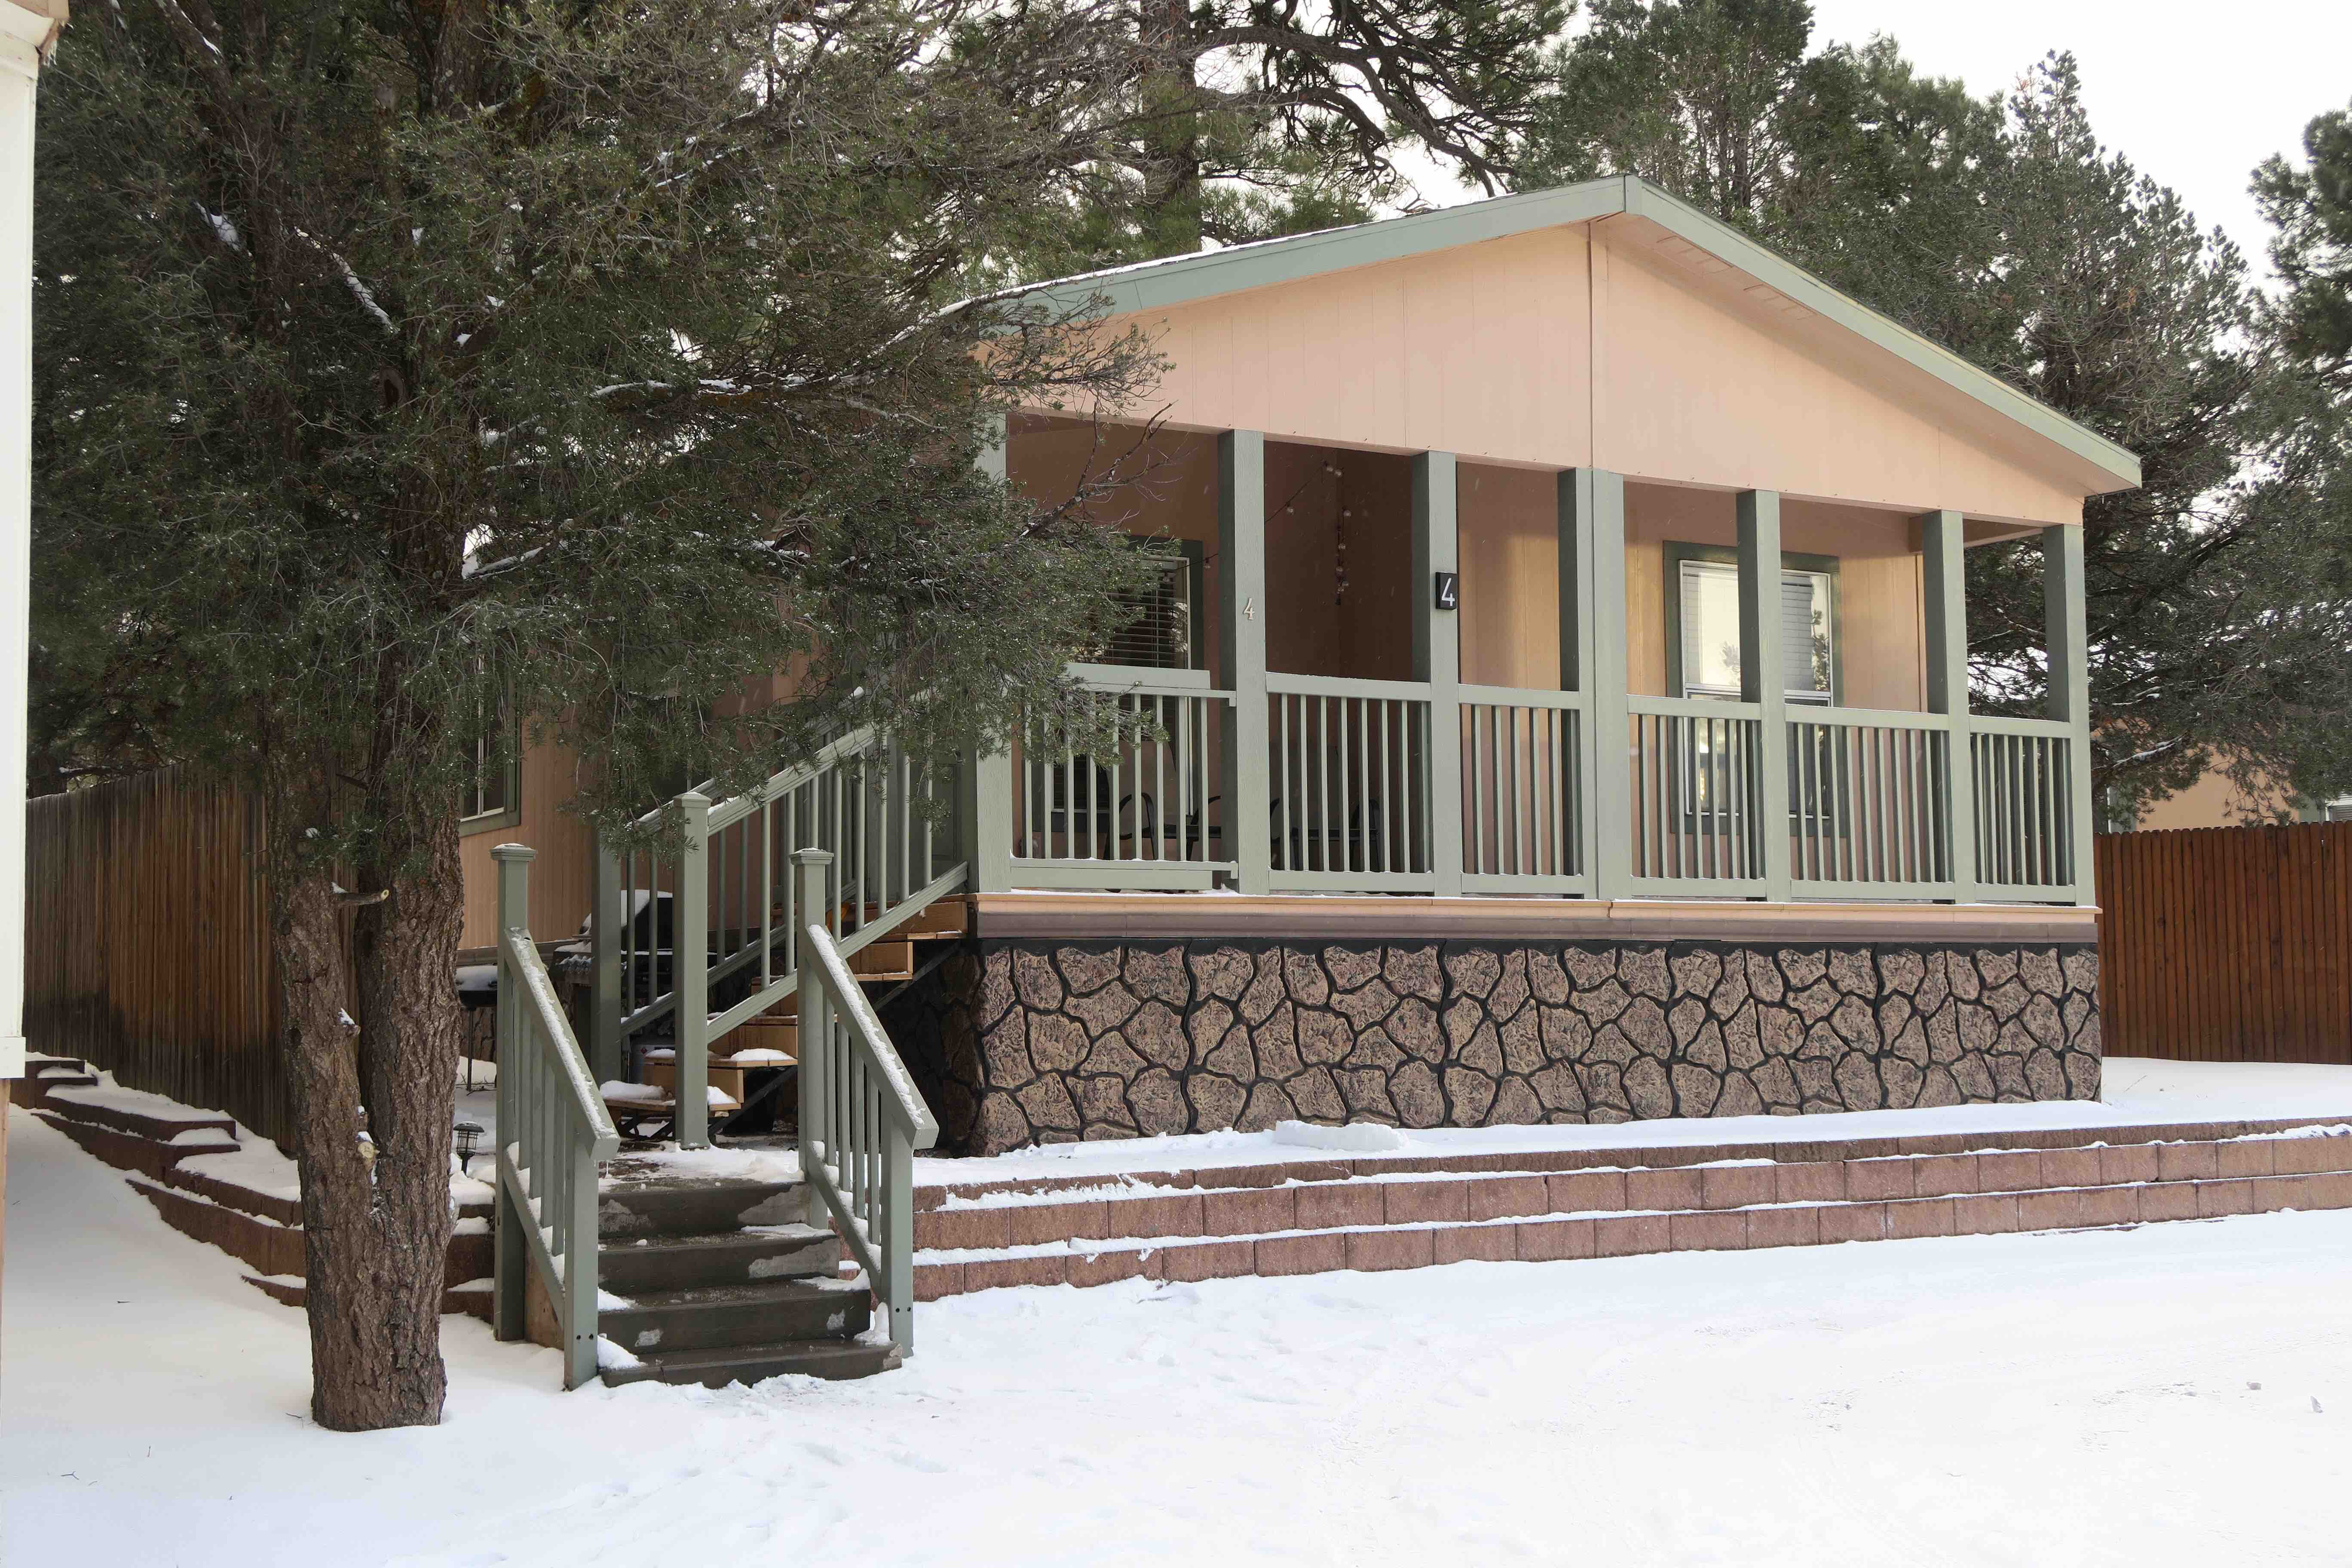 Grand Canyon Bungalow 4 At Grand Canyon Bungalows For Rent In Grand Canyon Village Arizona United States